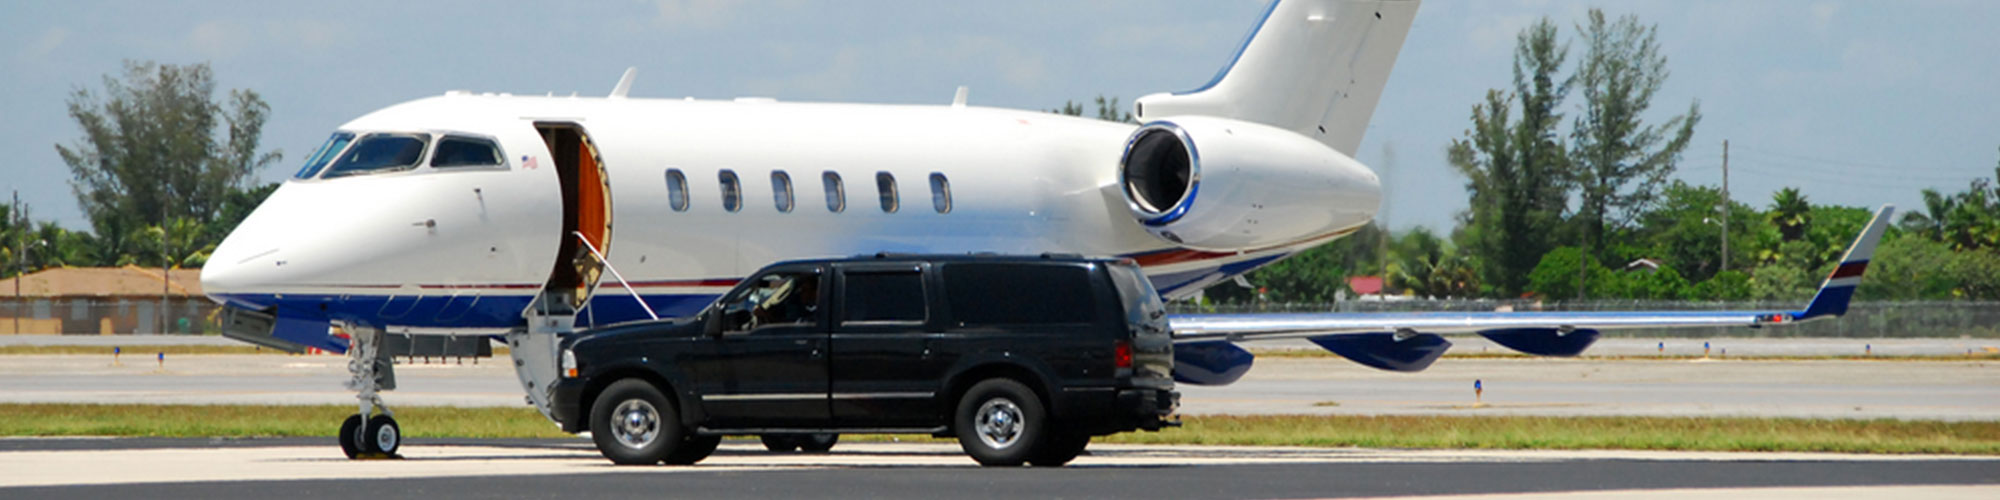 Armoured SUV waiting beside private jet at airport for VIP